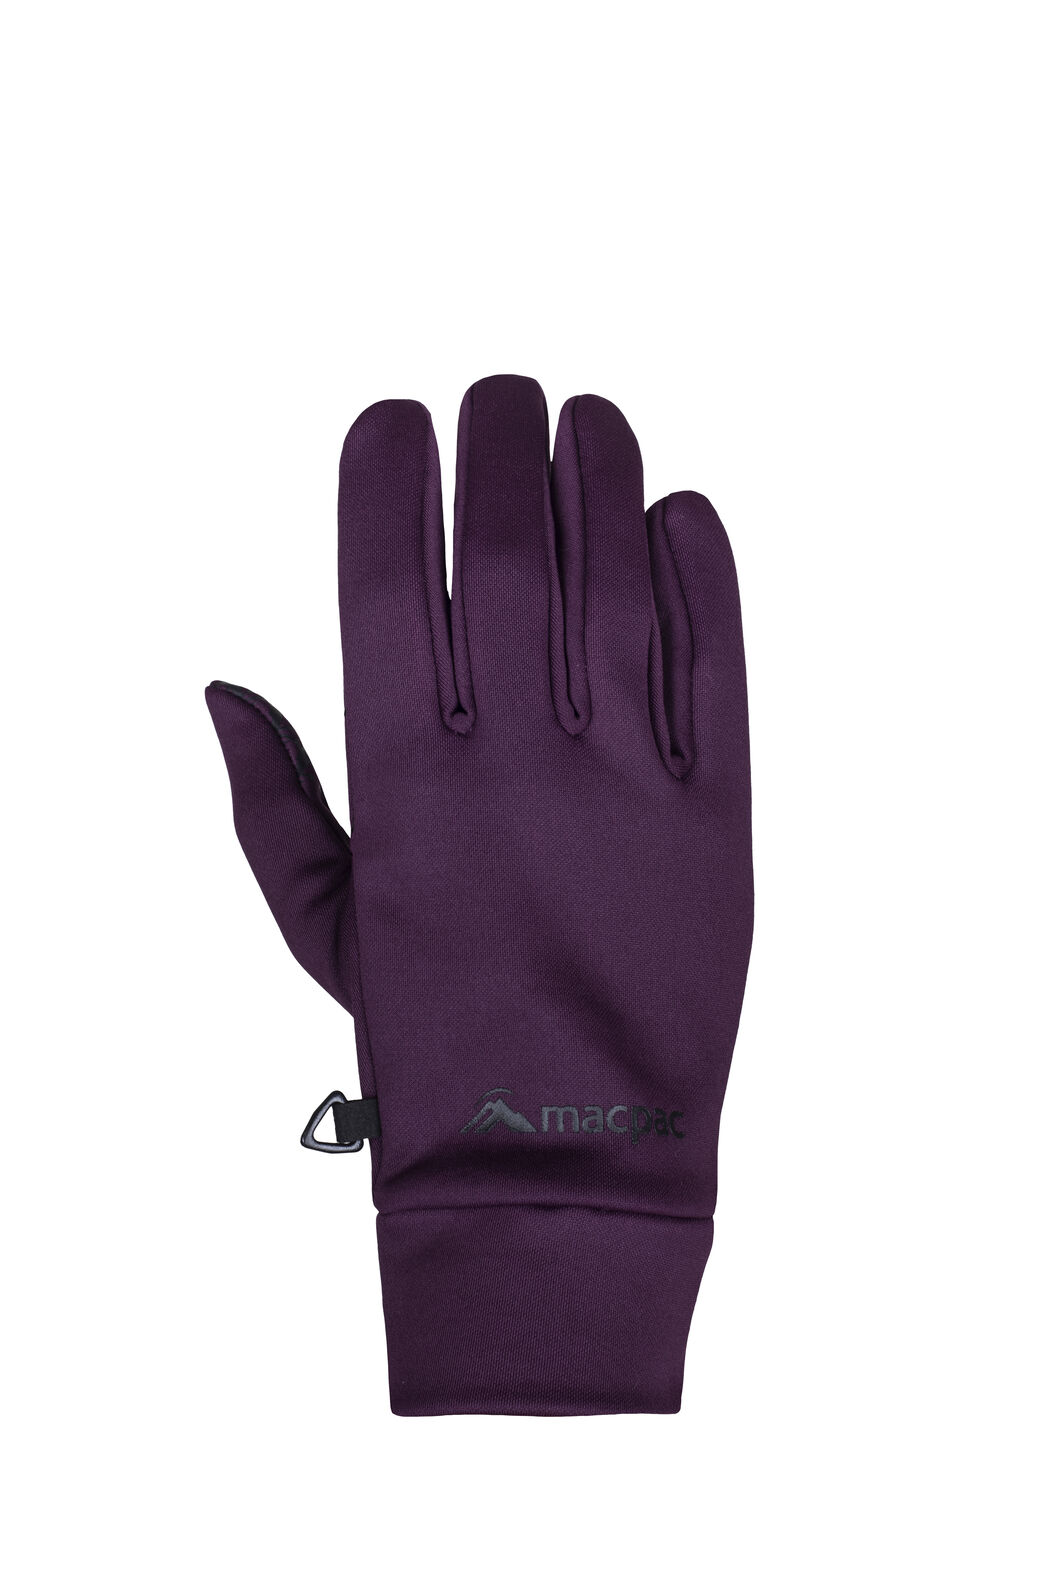 Macpac Stretch Gloves, Potent Purple, hi-res